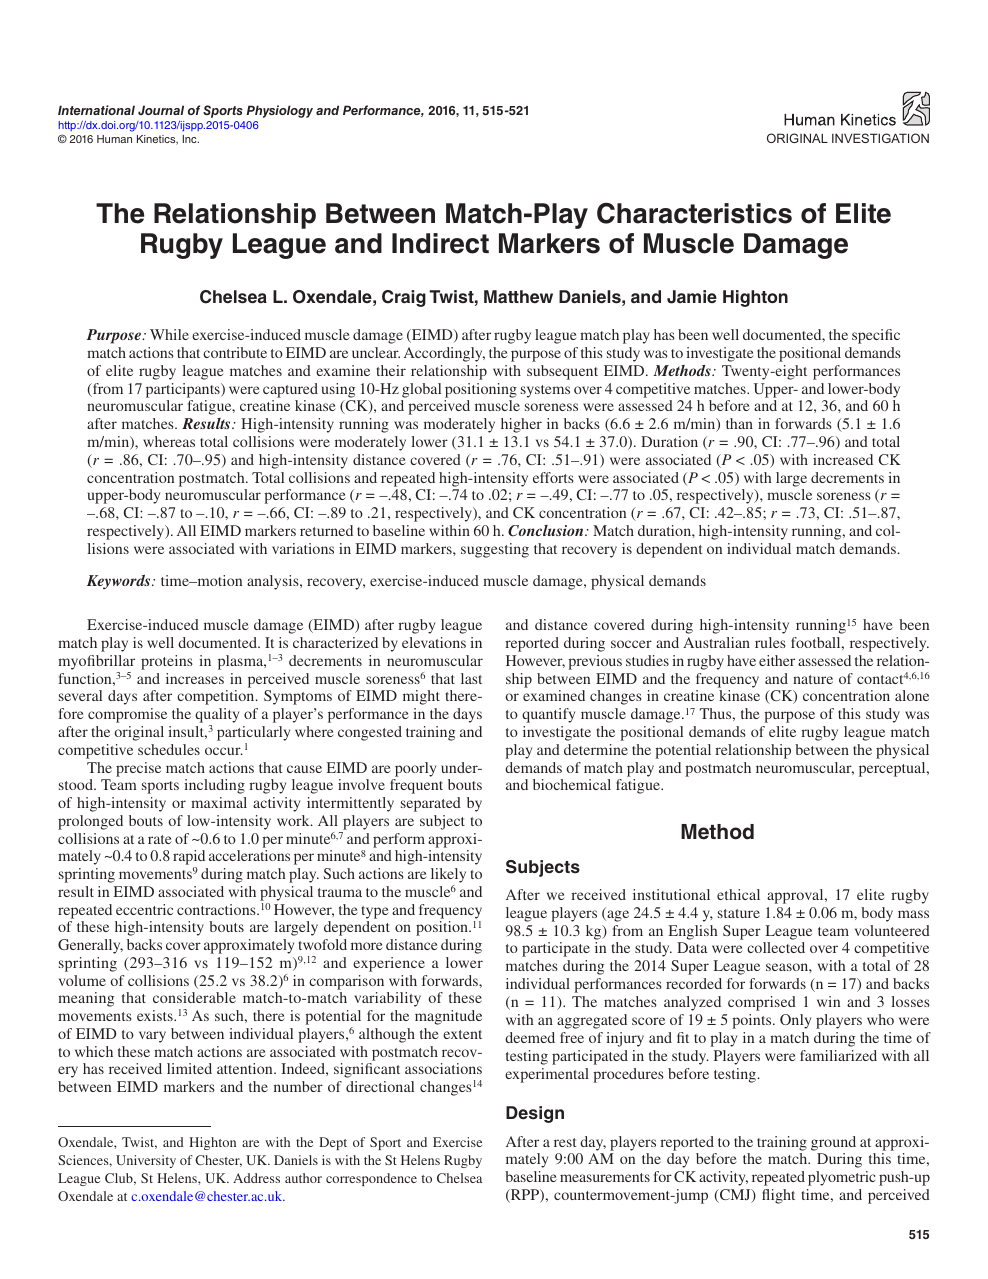 The Relationship between Match-Play Characteristics of Elite